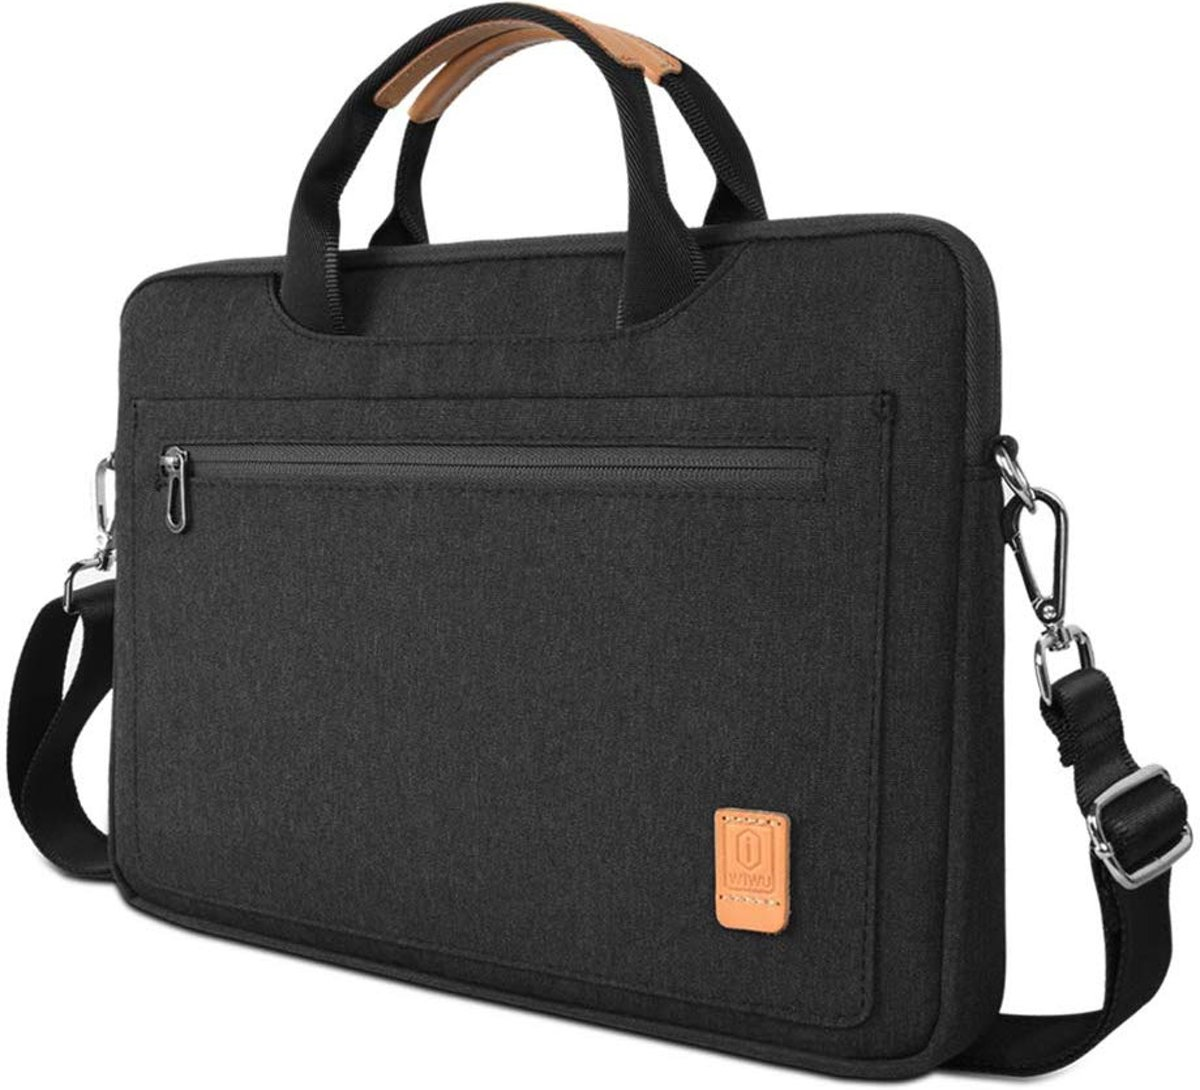 Apple Macbook Pro (2019) Laptop Tas - 13.3 inch Pioneer Waterafstotende laptoptas met schouderband - Zwart